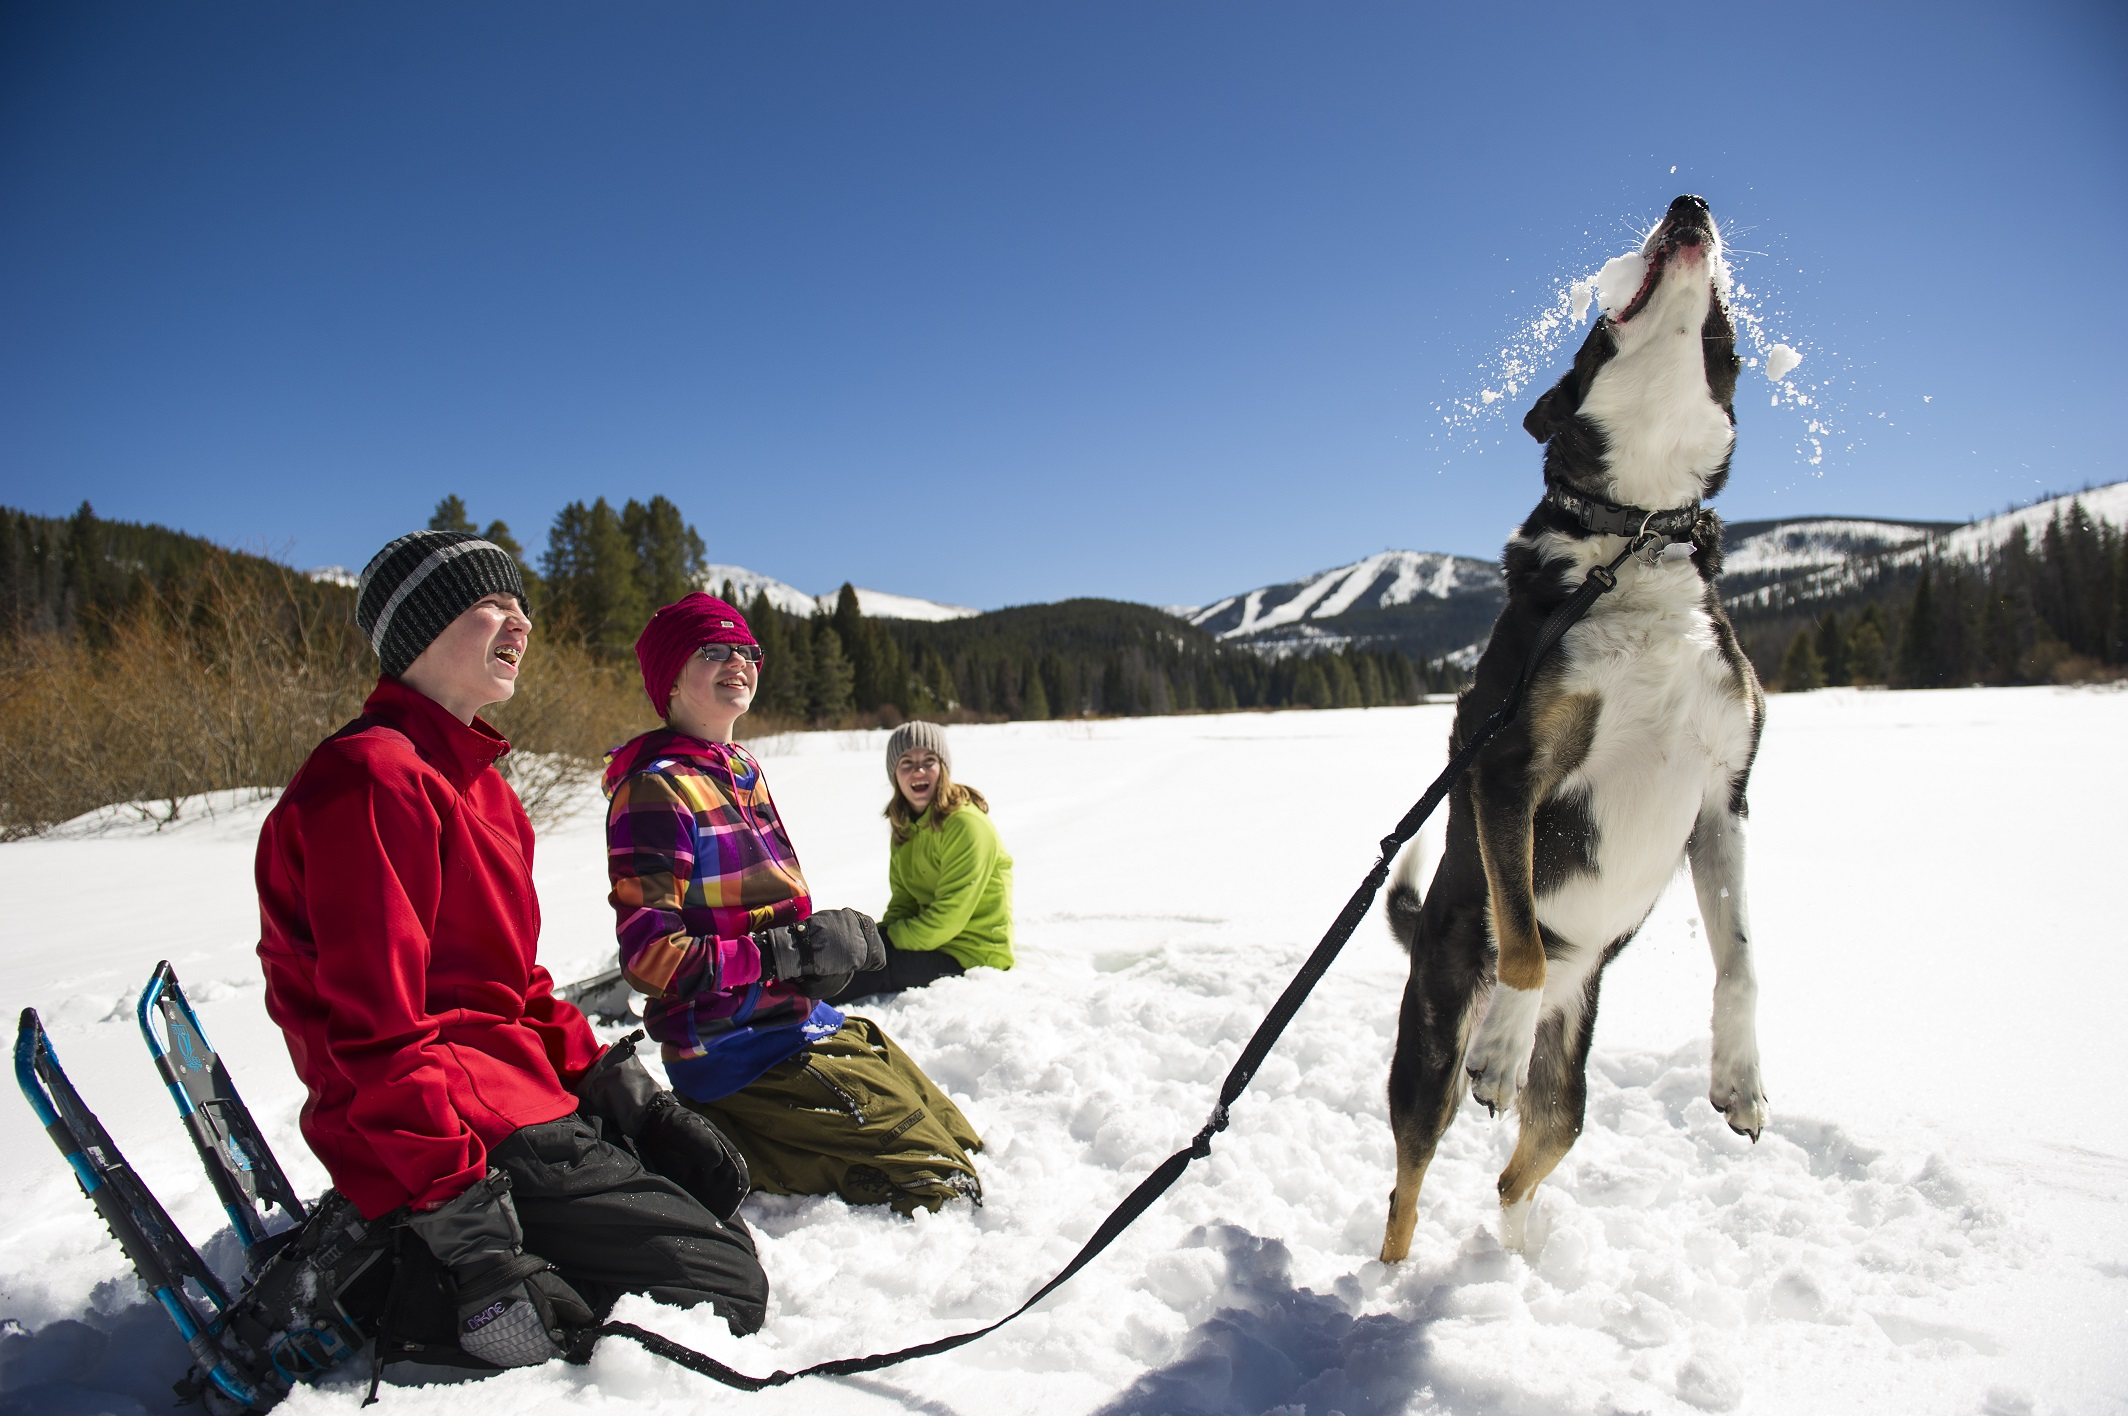 Winter park fraser valley chamber announces 25 winter for Best family winter vacation spots